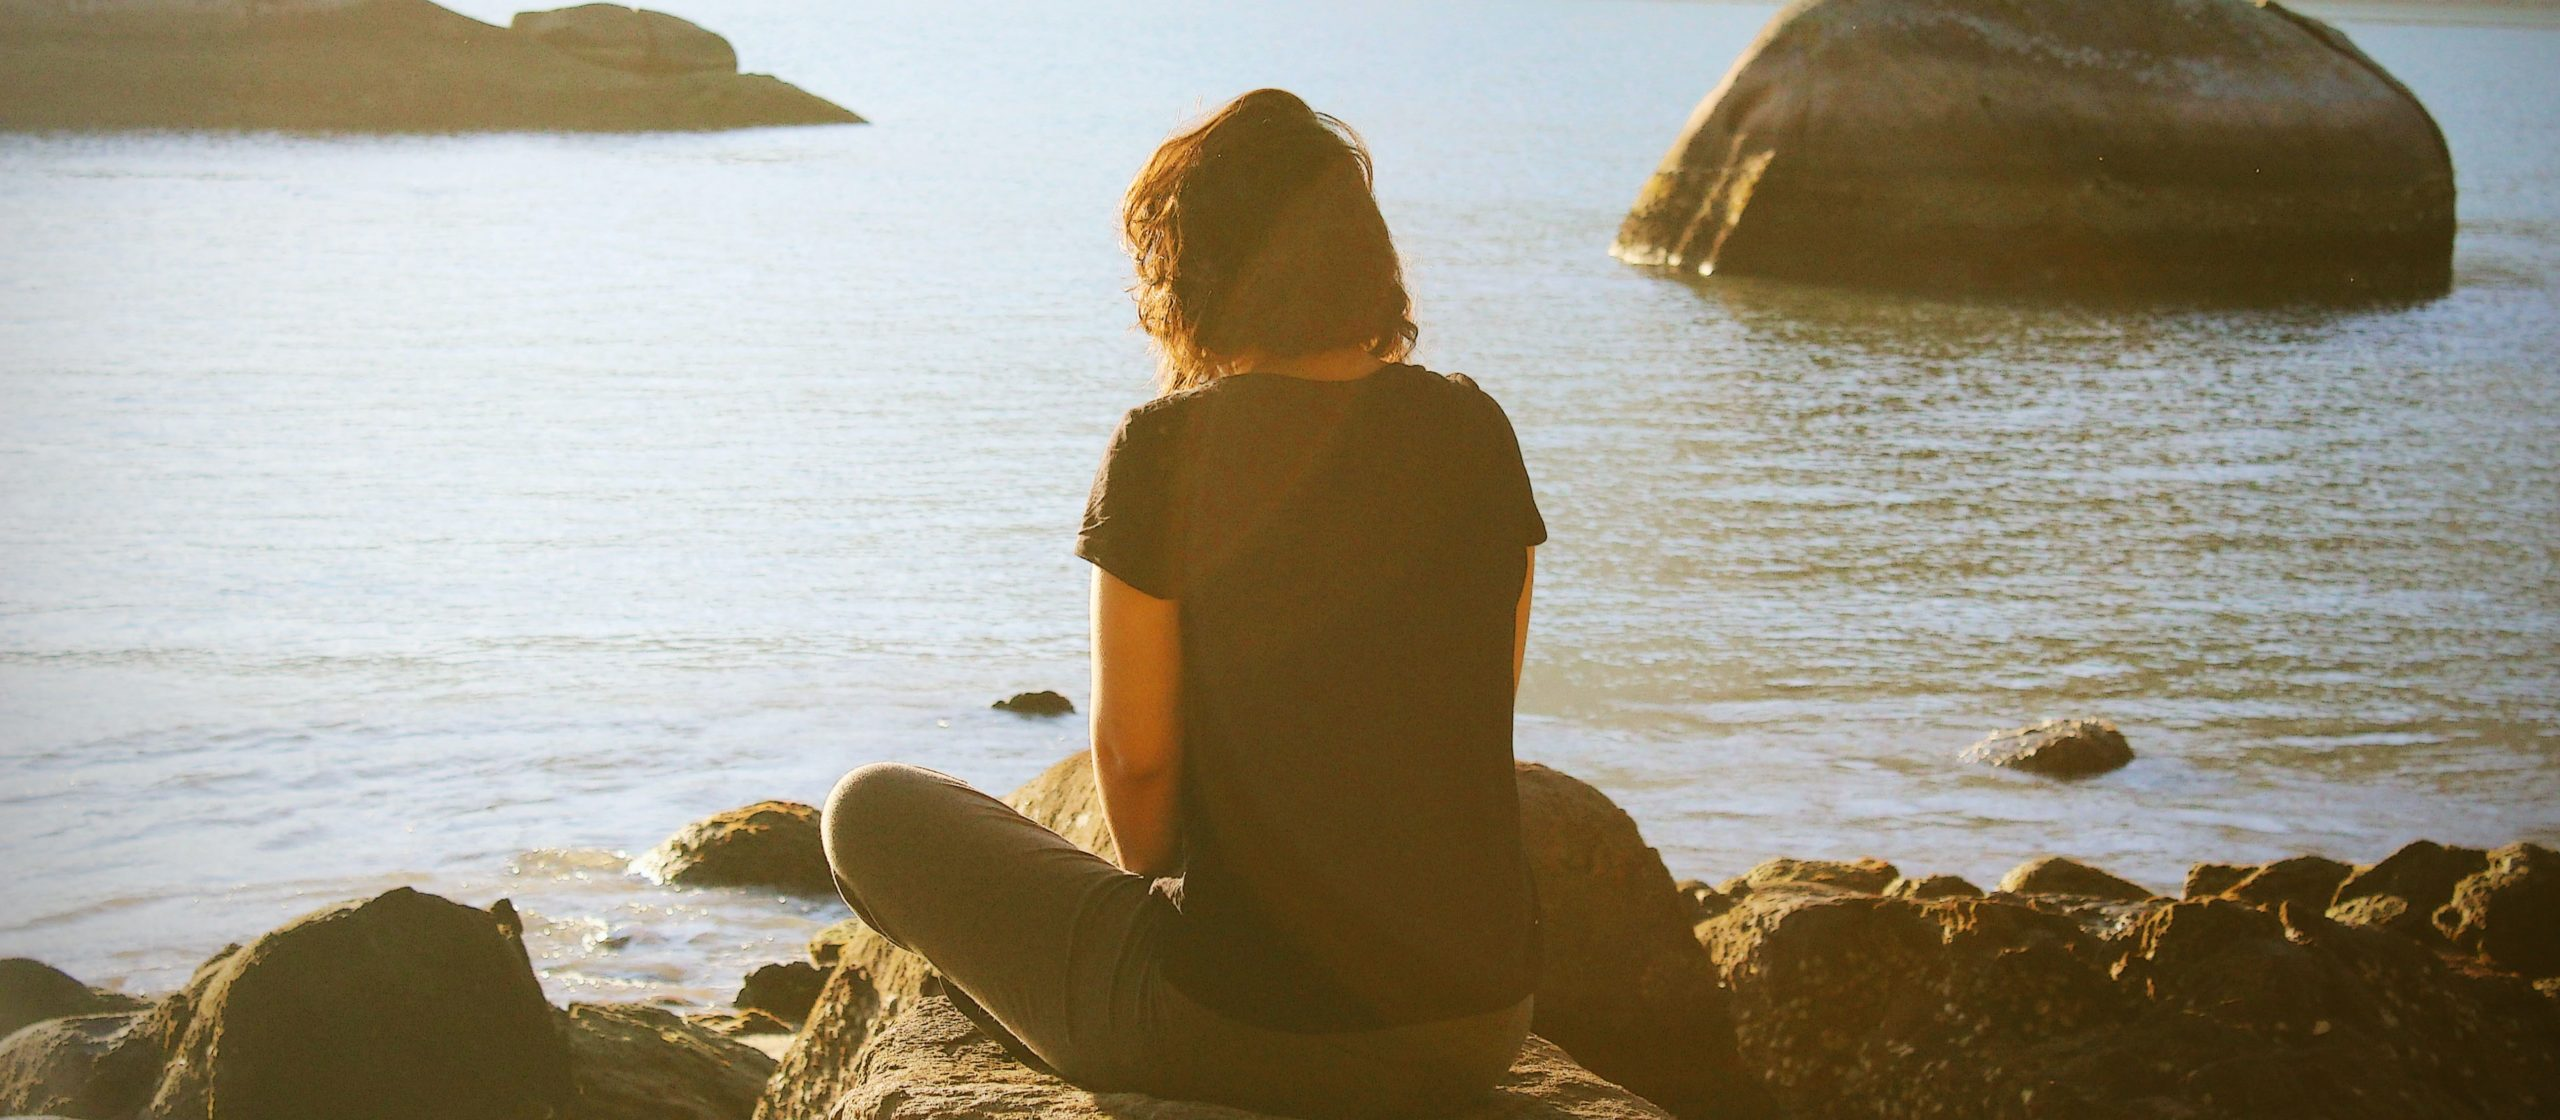 Woman meditating in front of water at sunset.